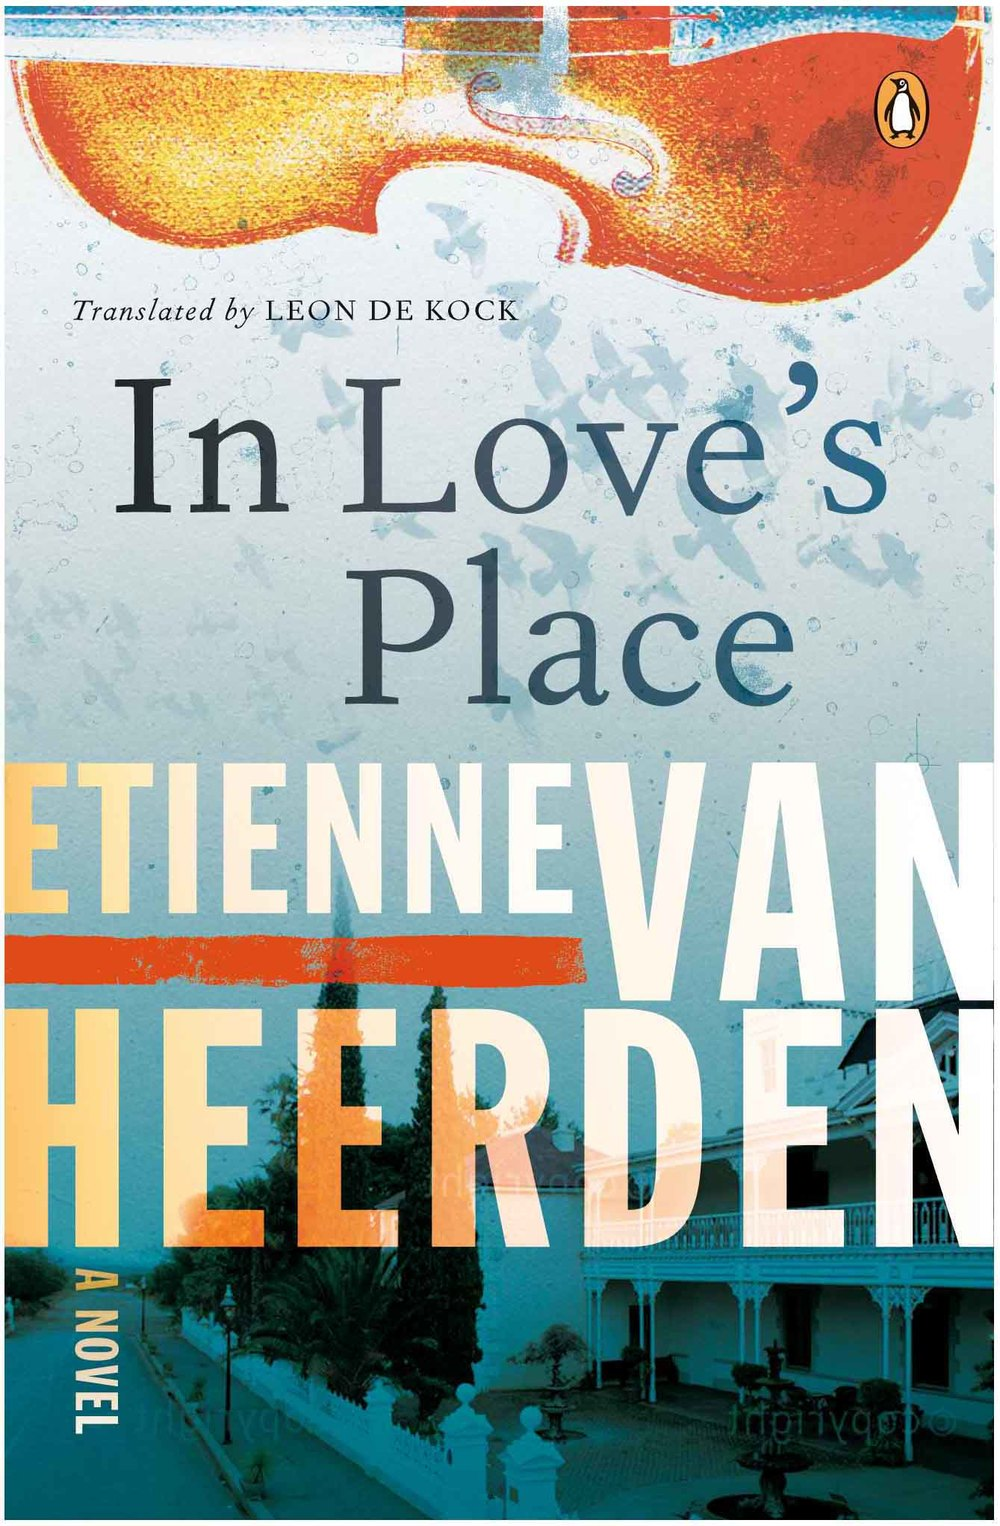 IN LOVE'S PLACE  Literary Fiction, 456 pages. Penguin (SA), Aug 2013.  Winner of the W A Hofmeyr Prize in 2005 and the ATKV prize for prose in 2006.     After his heart bypass operation former champion athlete Christian Lemmer needs to take stock of his life, especially when he inadvertently becomes the target of a Cape Flats gang.